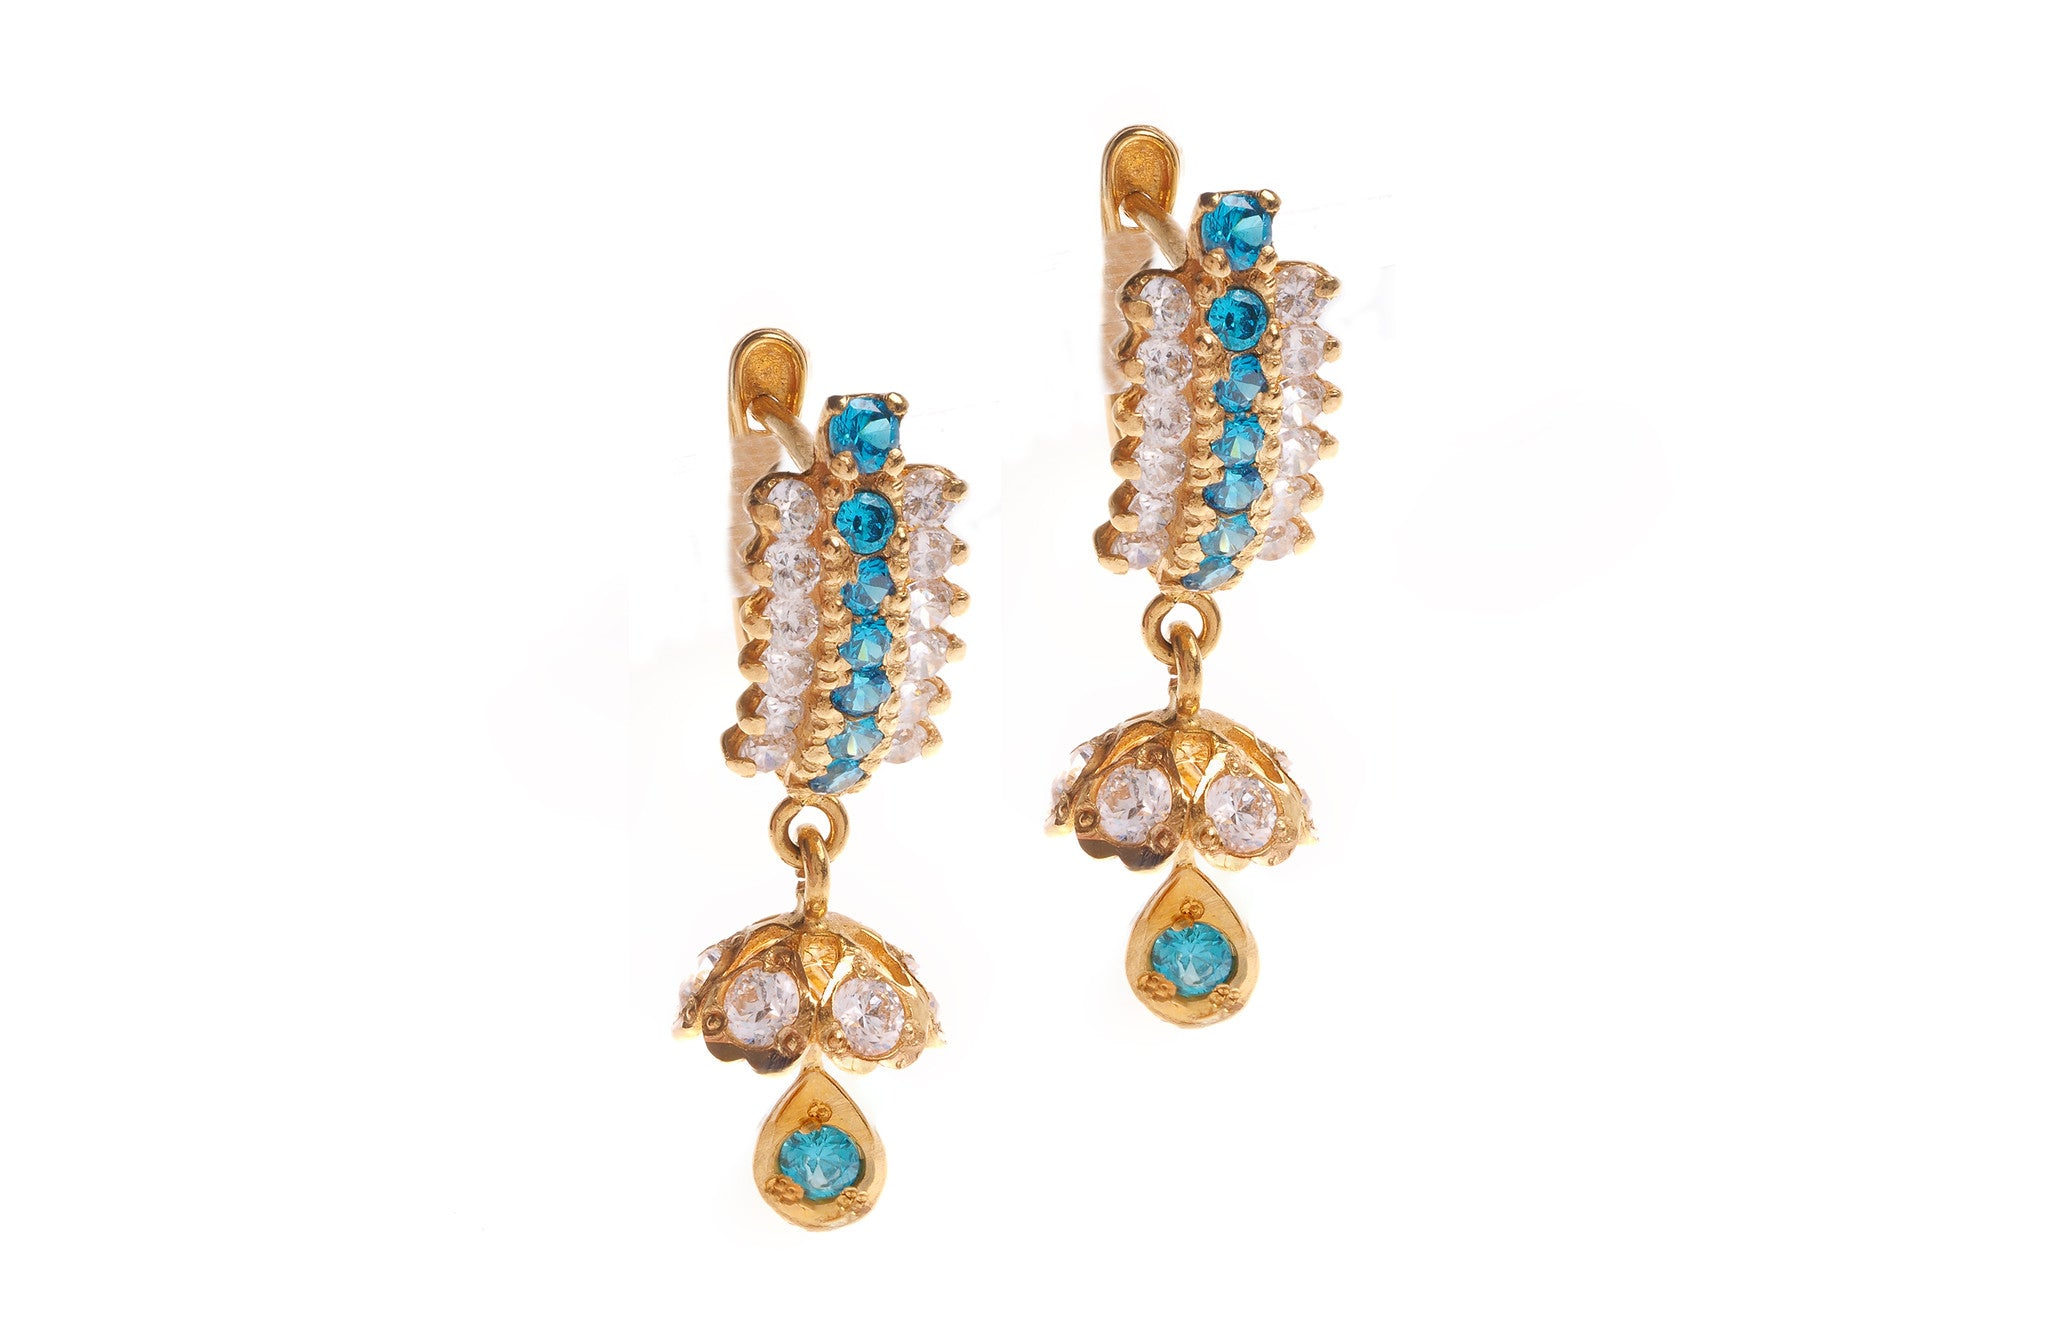 22ct Yellow Gold Earrings set with Cubic Zirconia stones (G1427), Minar Jewellers - 2